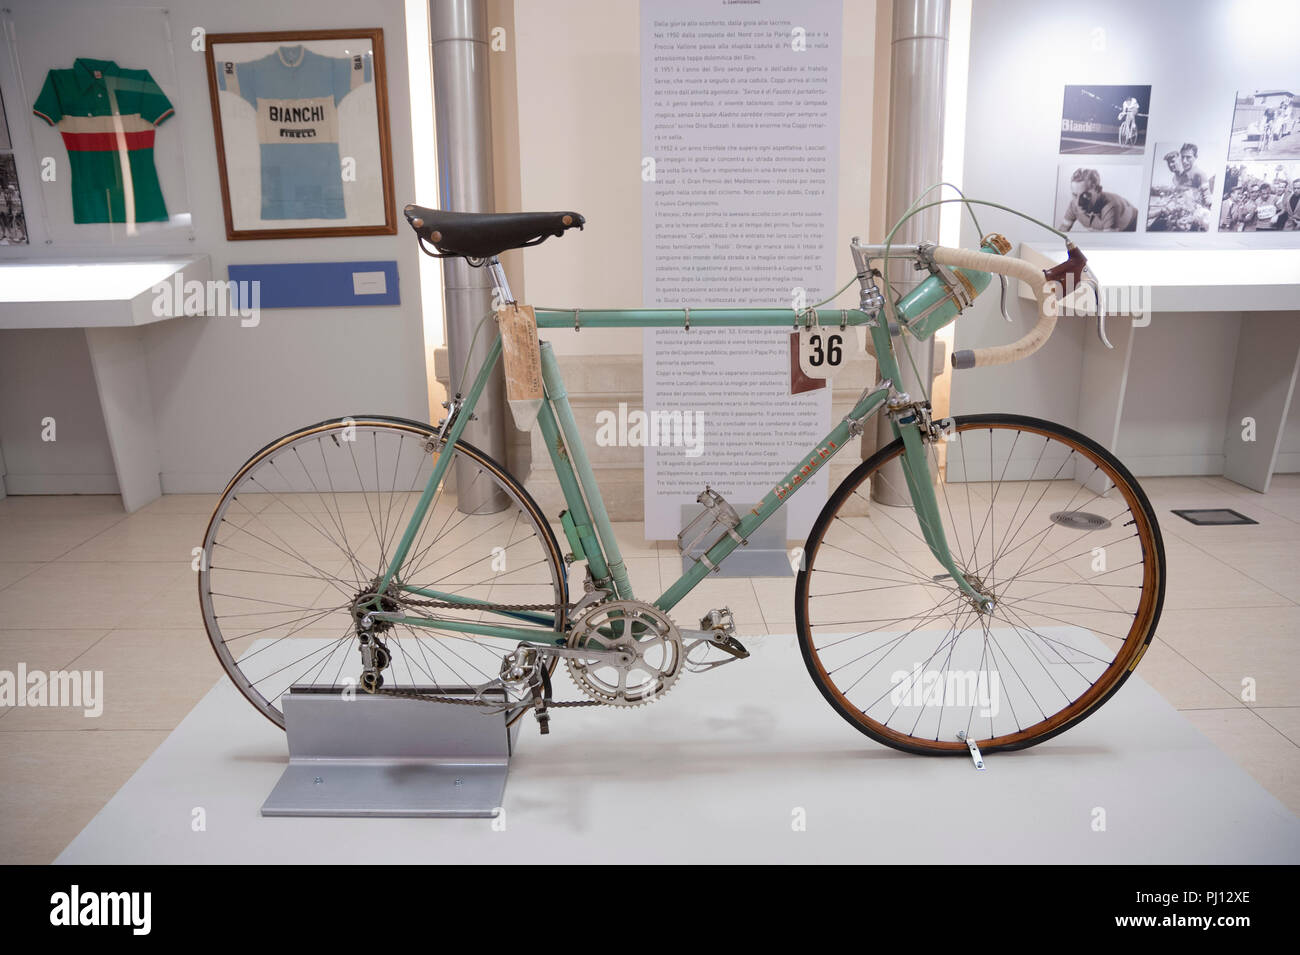 Vintage Bianchi road bike on display at an exhibition held